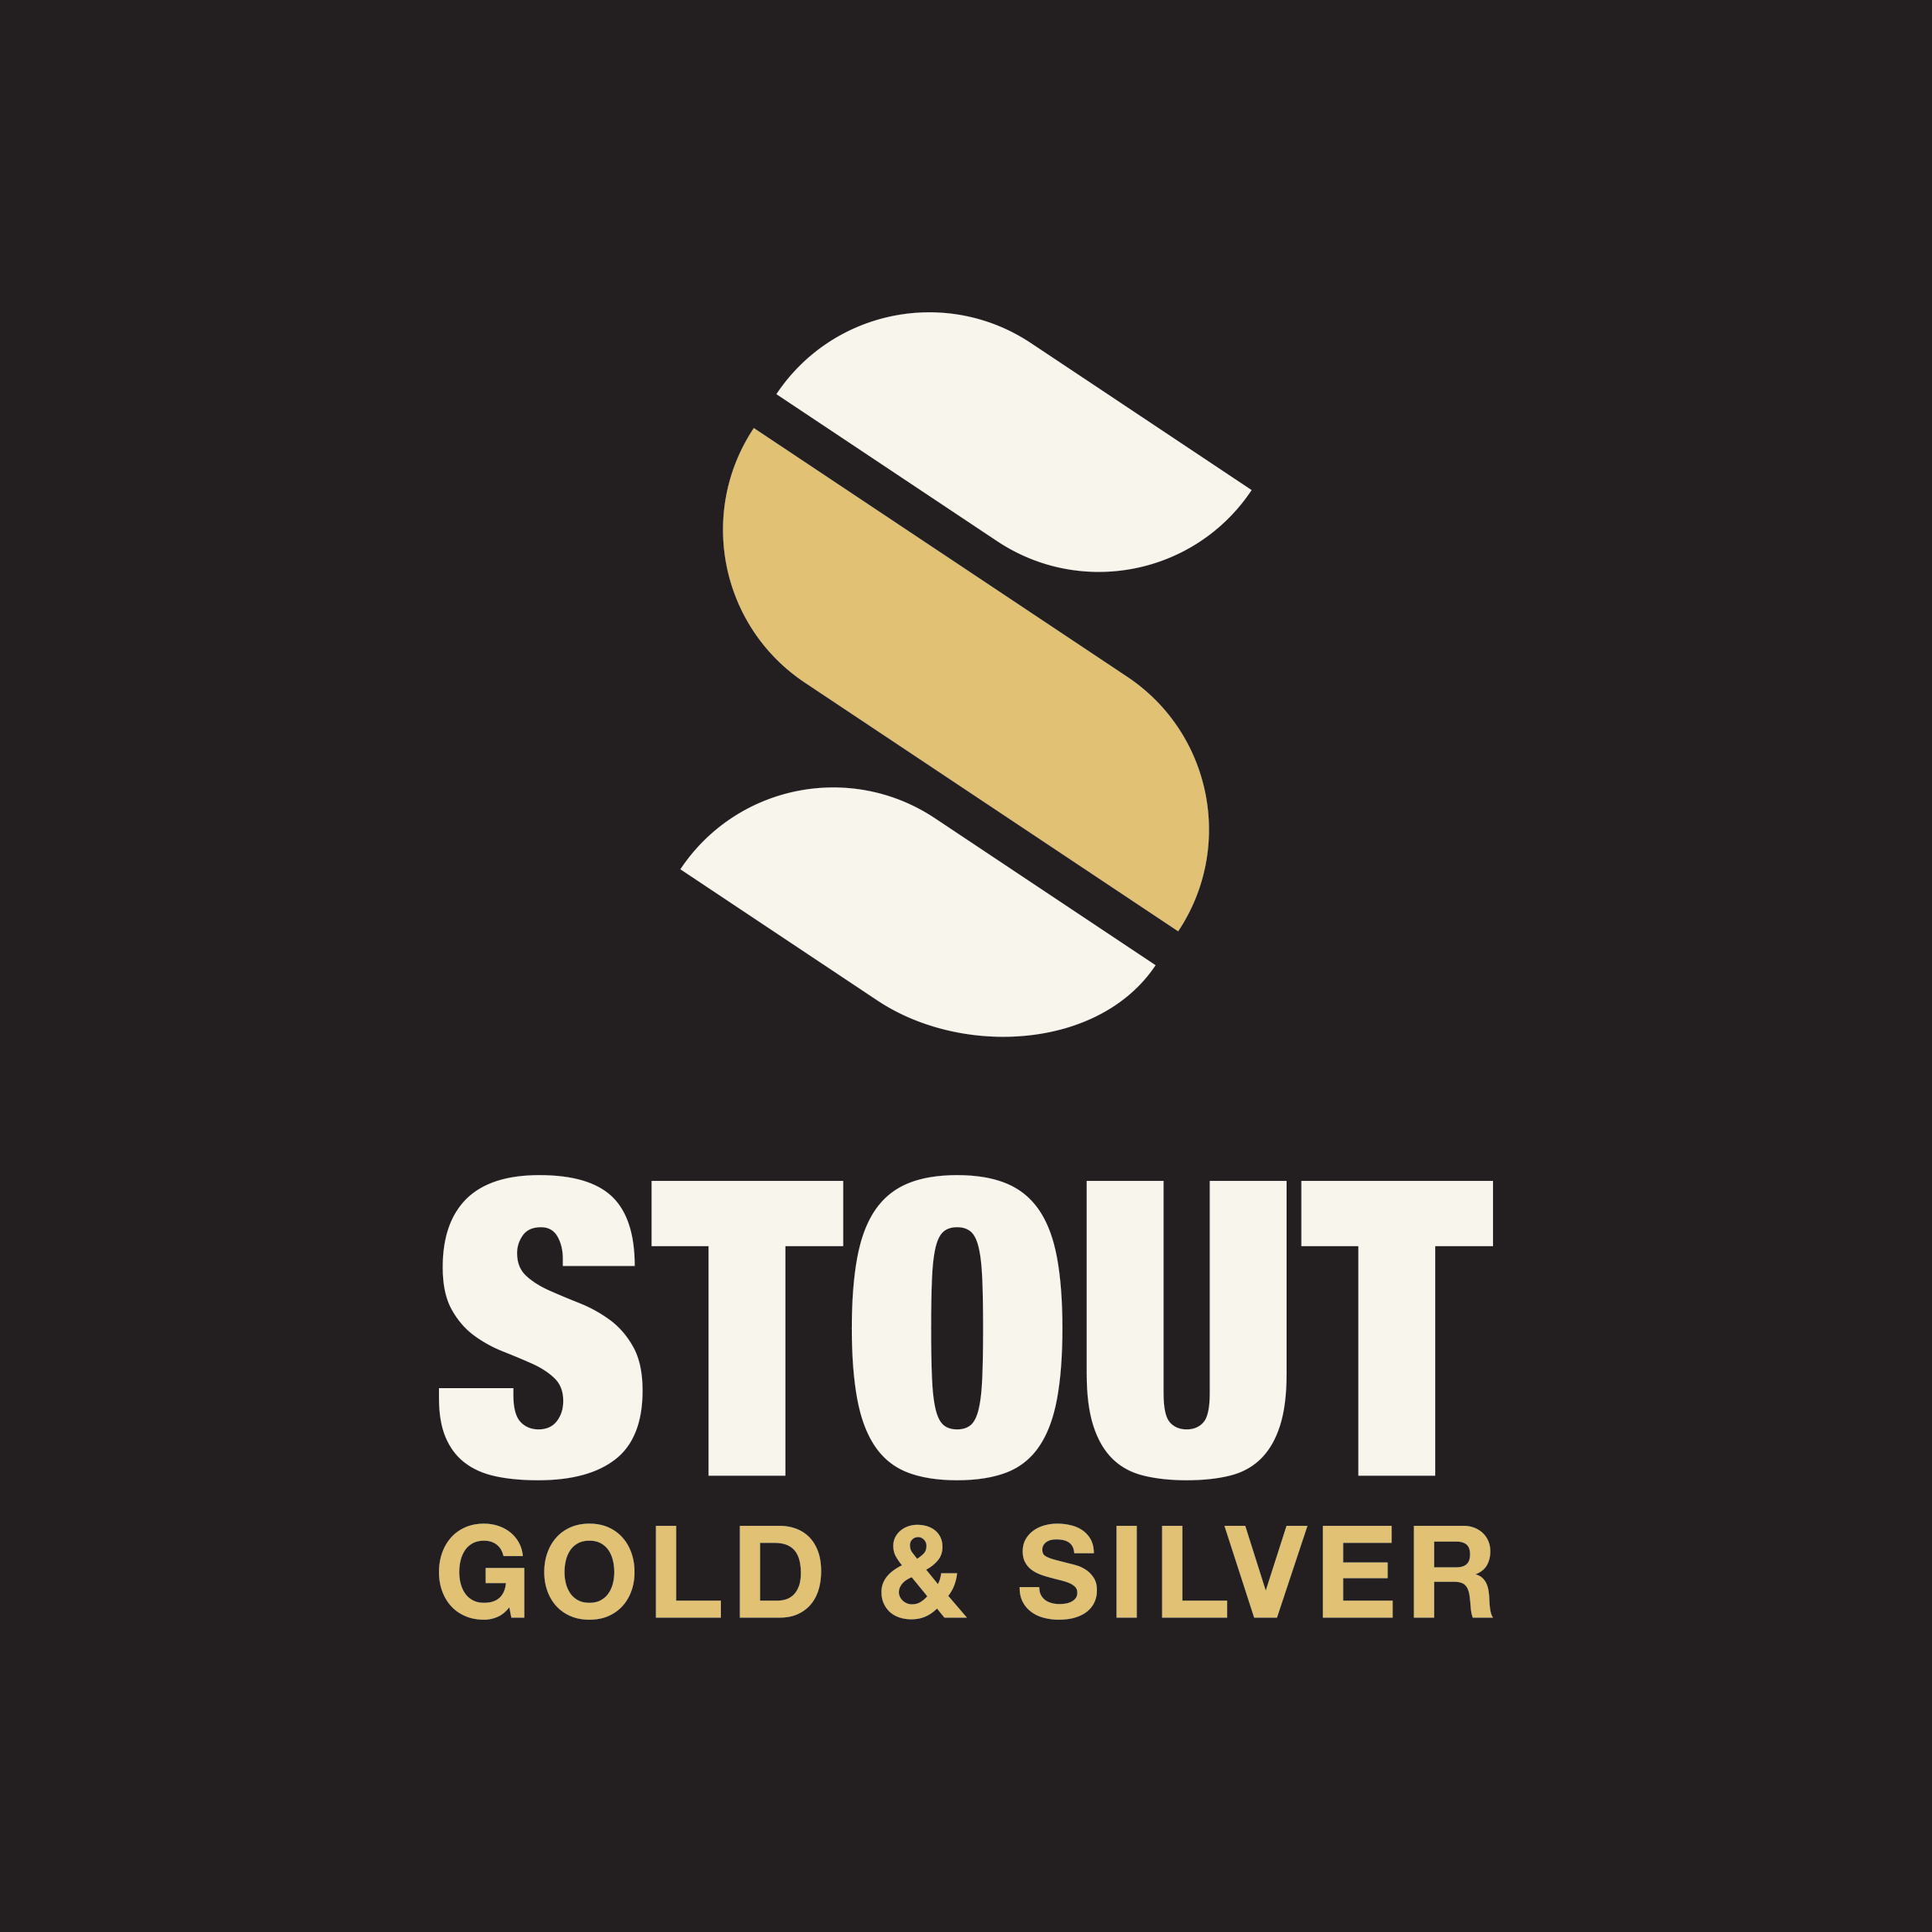 Stout-stacked-logo-dark.png